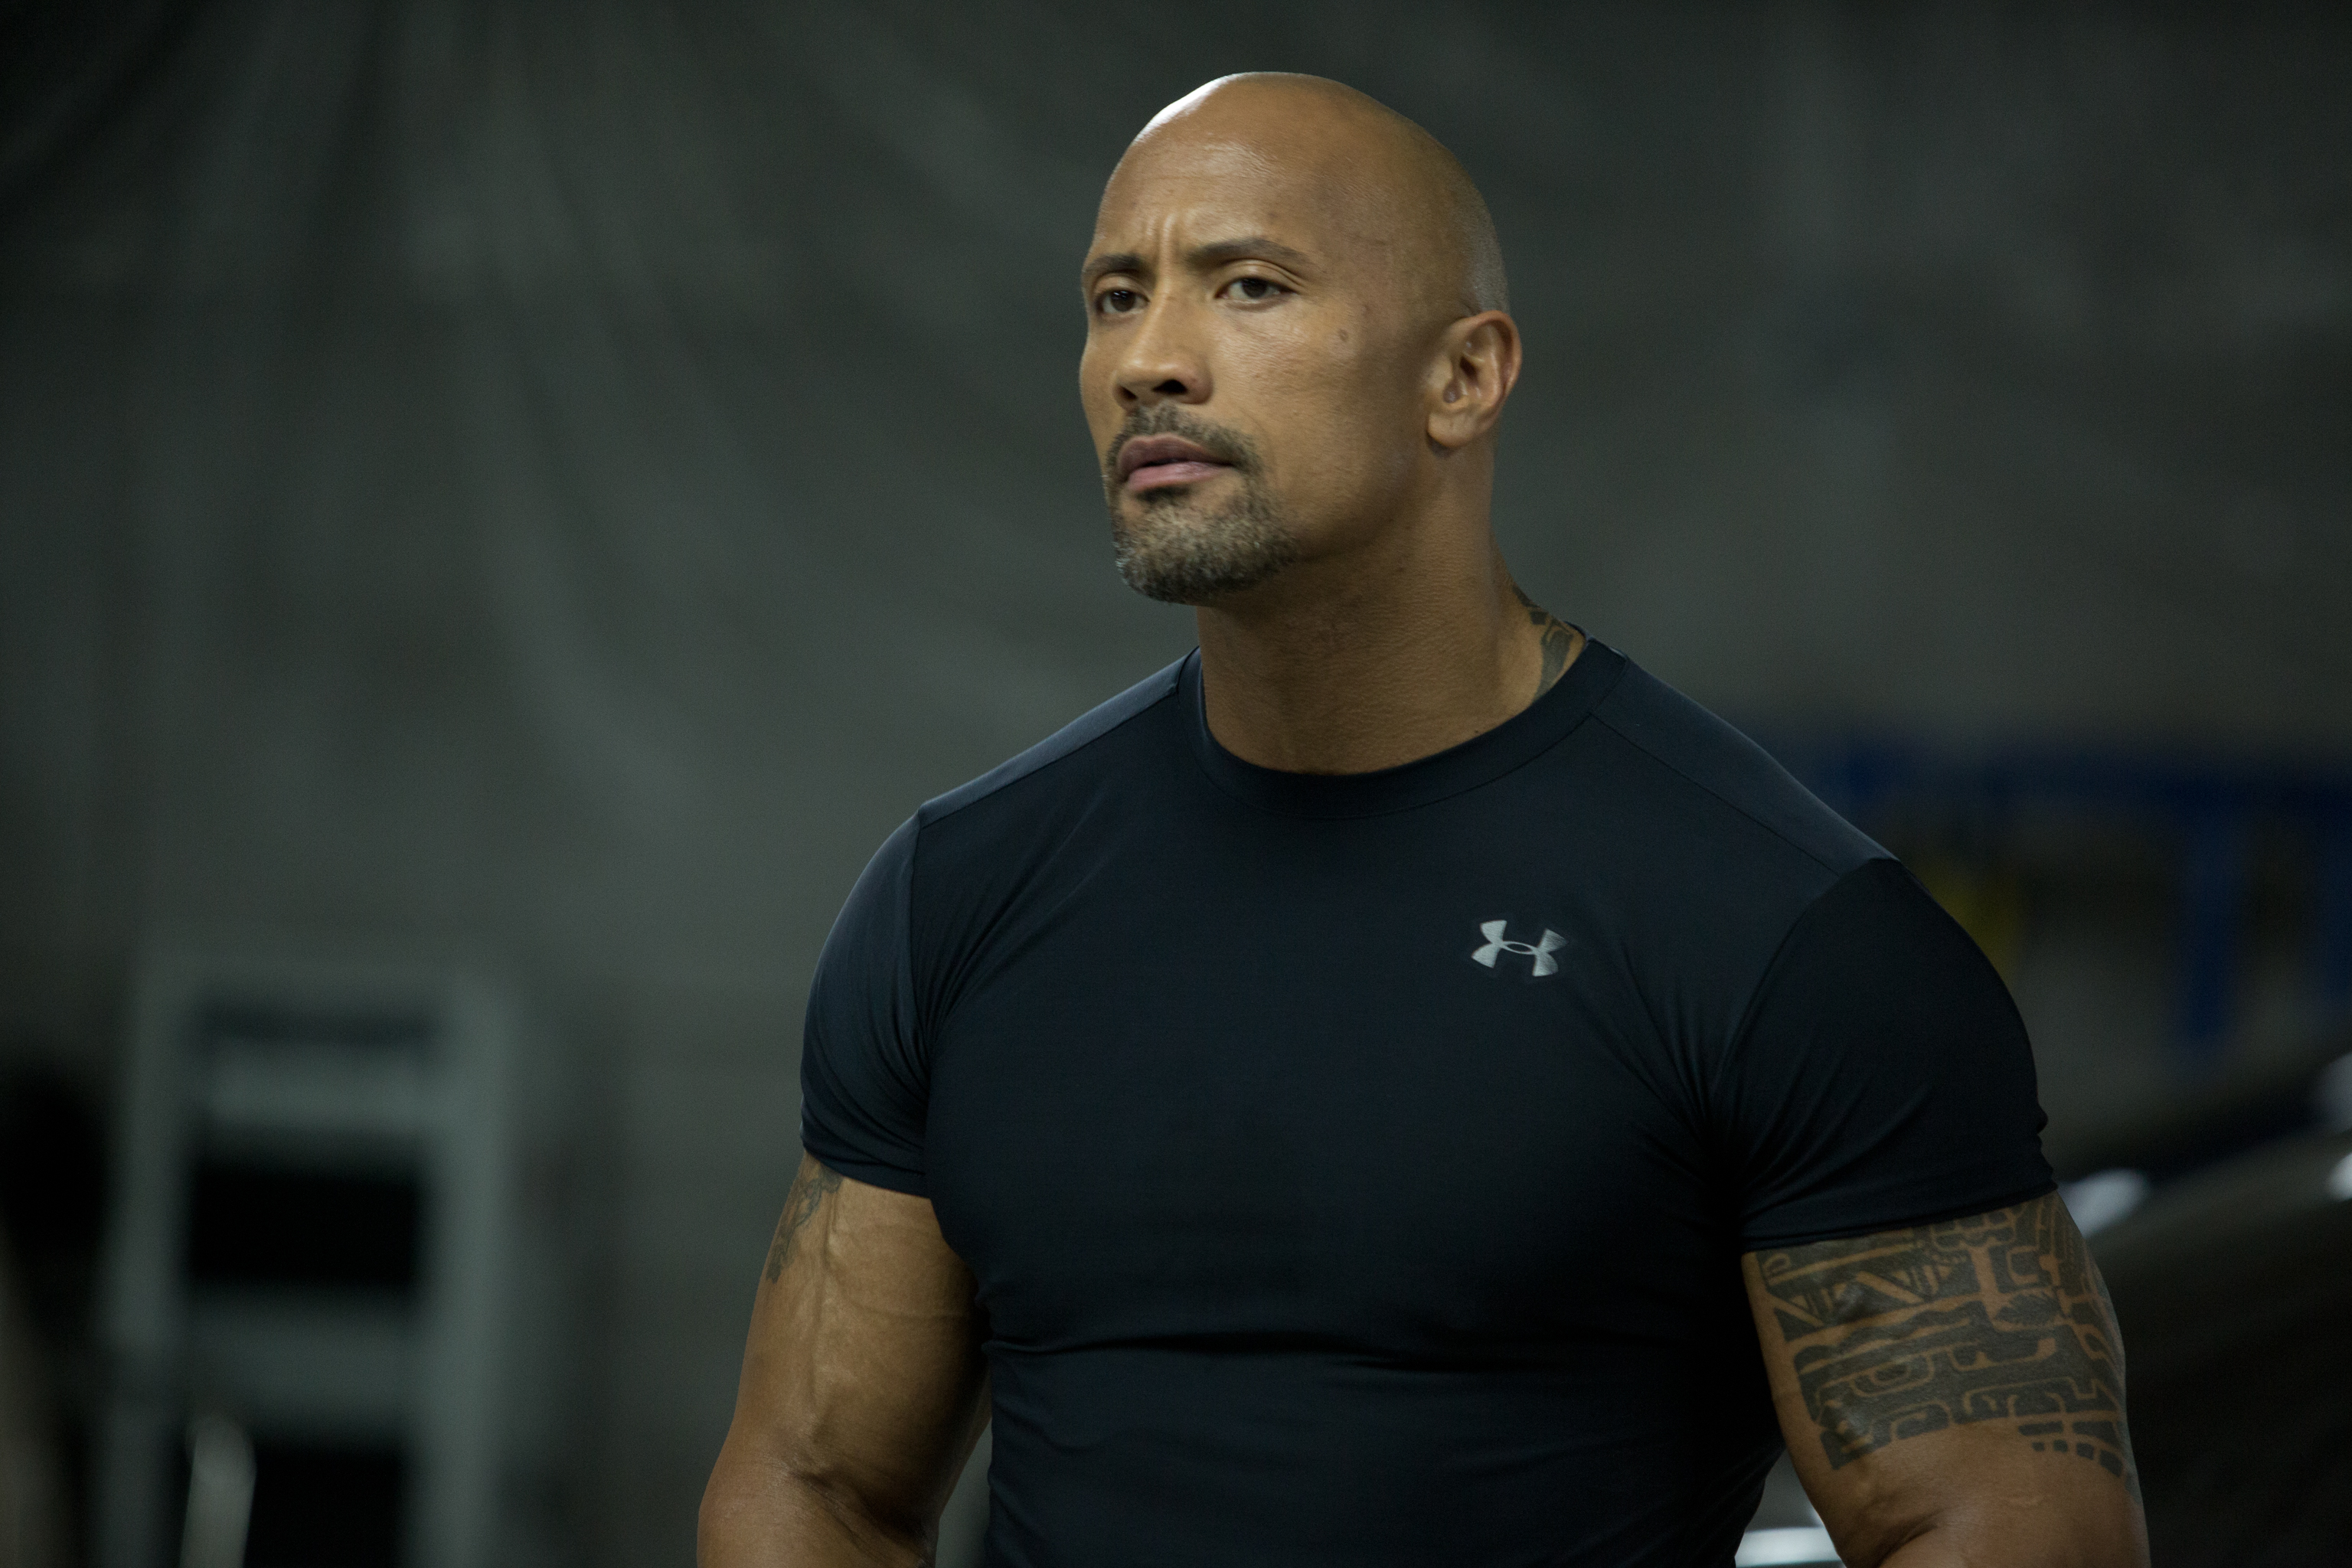 Dwayne-Johnson-San-Andreas-3D